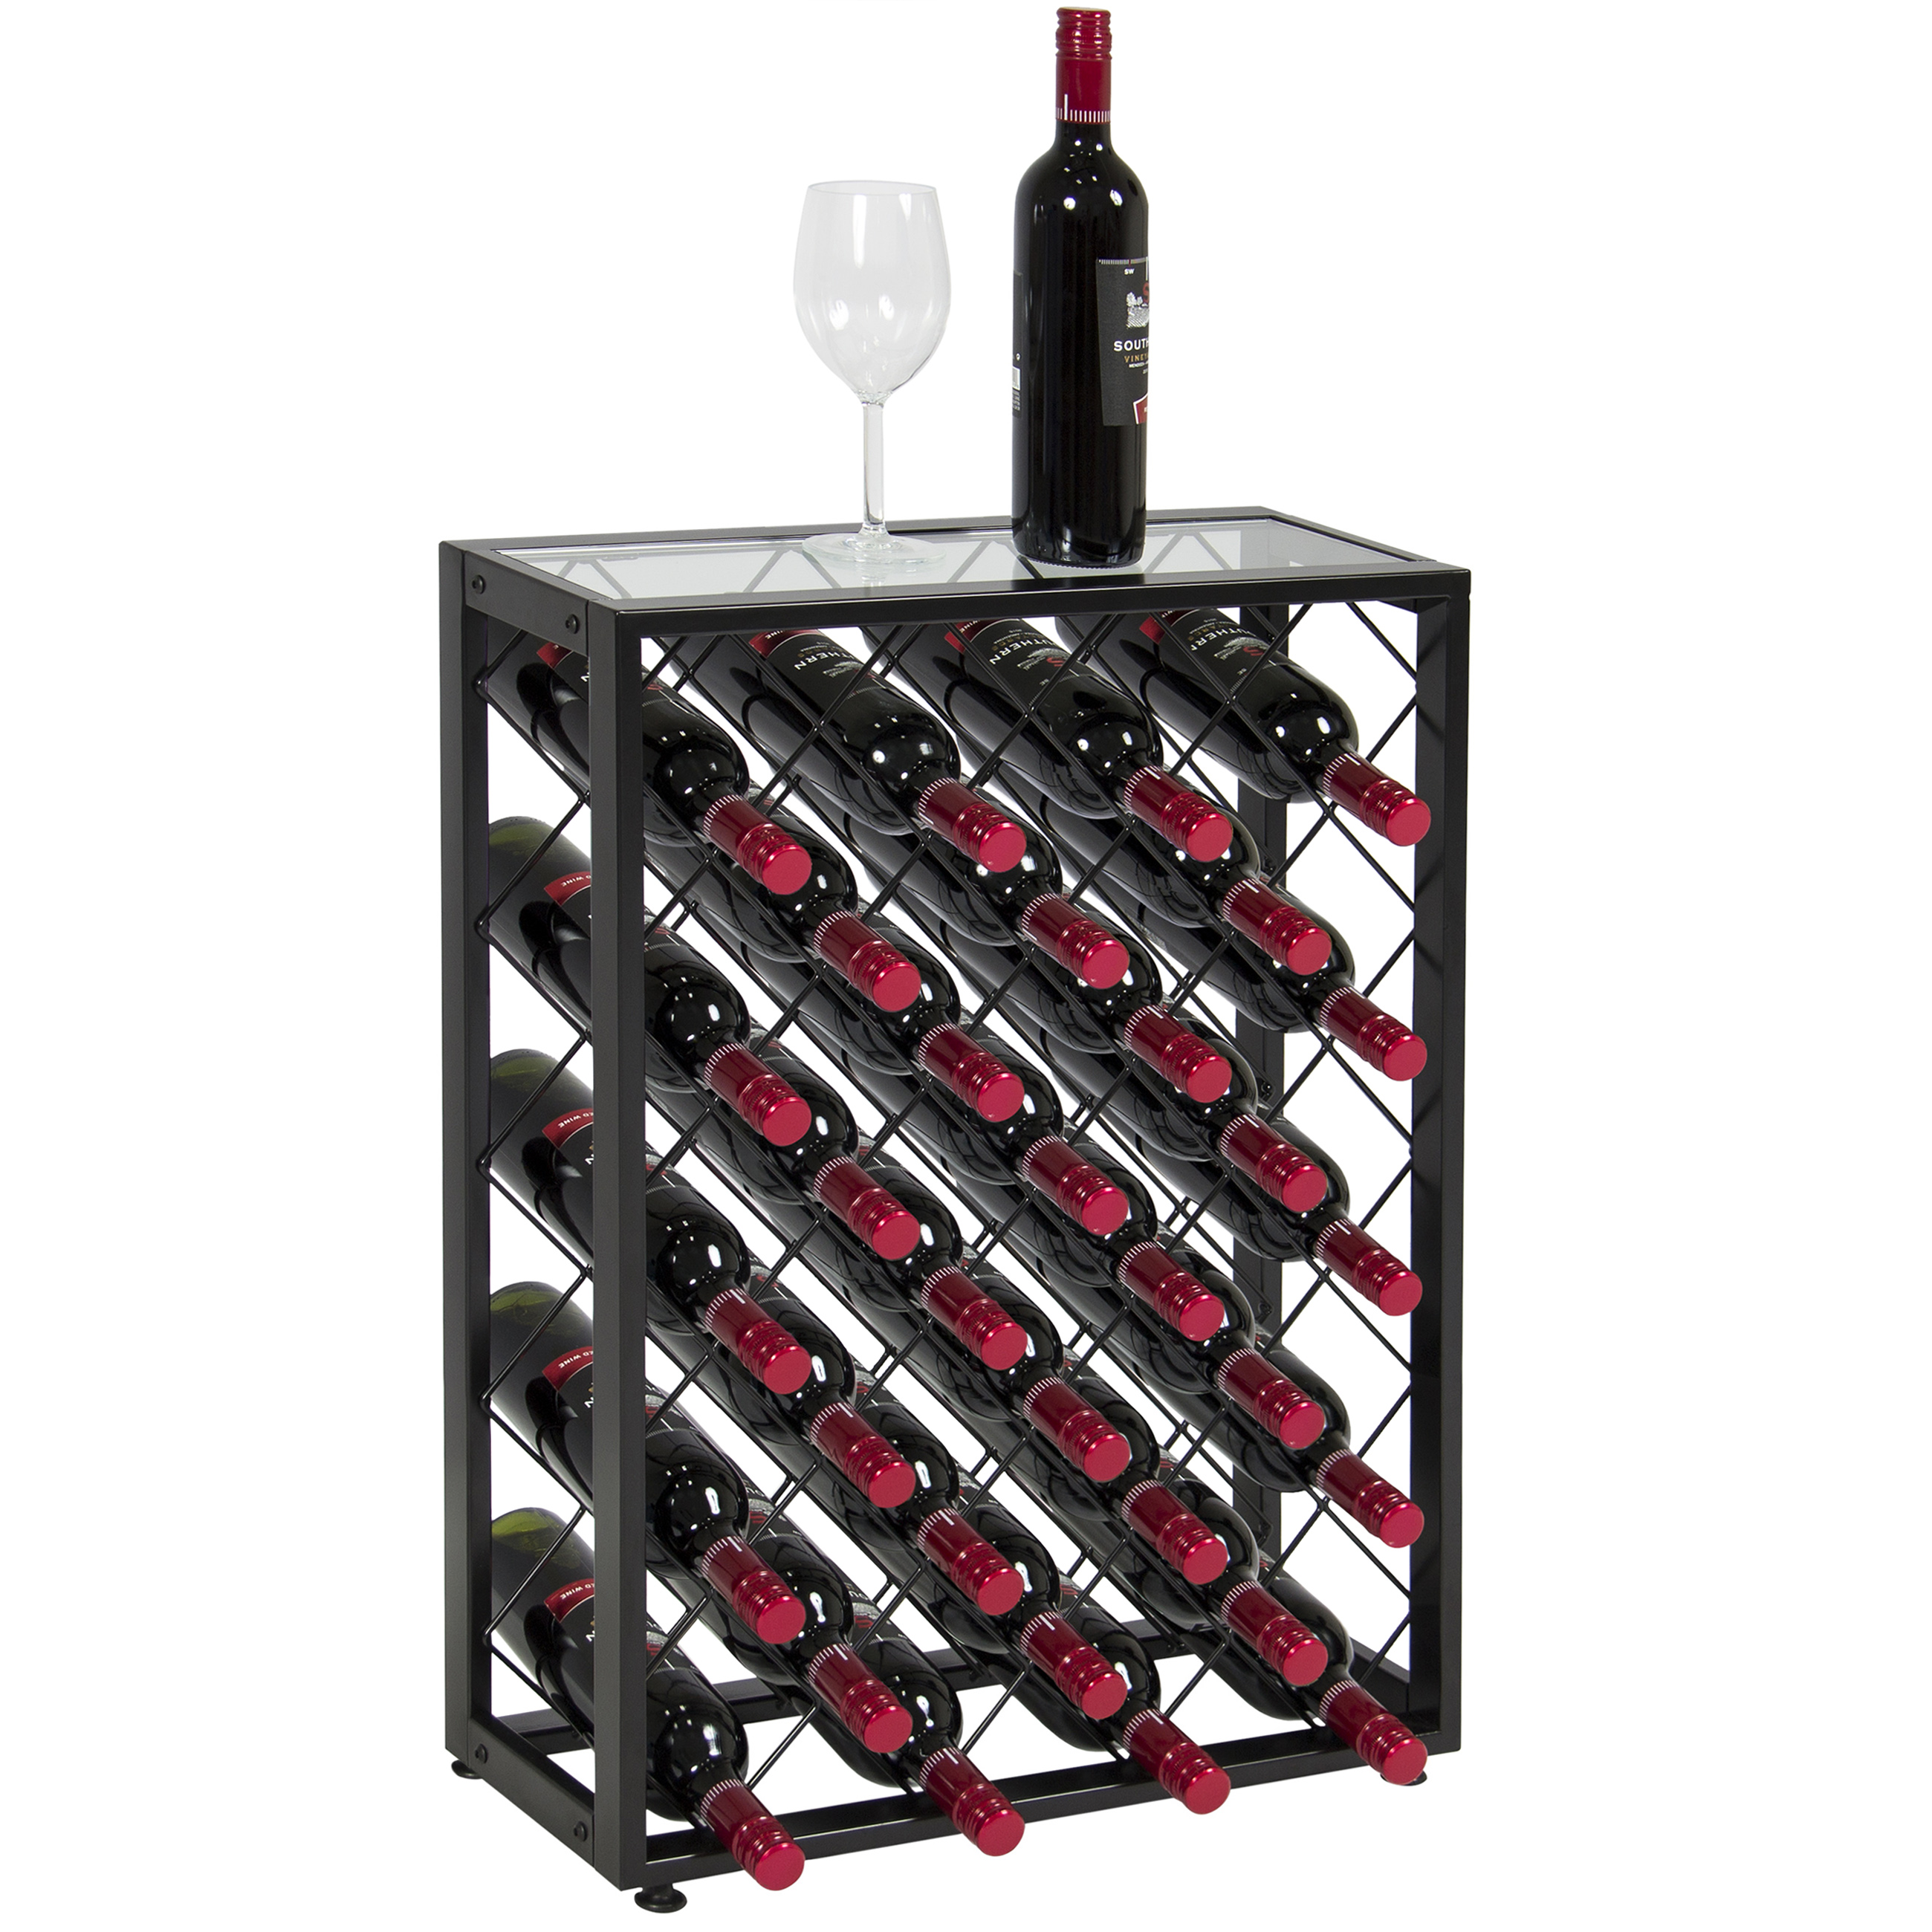 Best Choice Products 32-Bottle Wine Rack Liquor Storage Cabinet